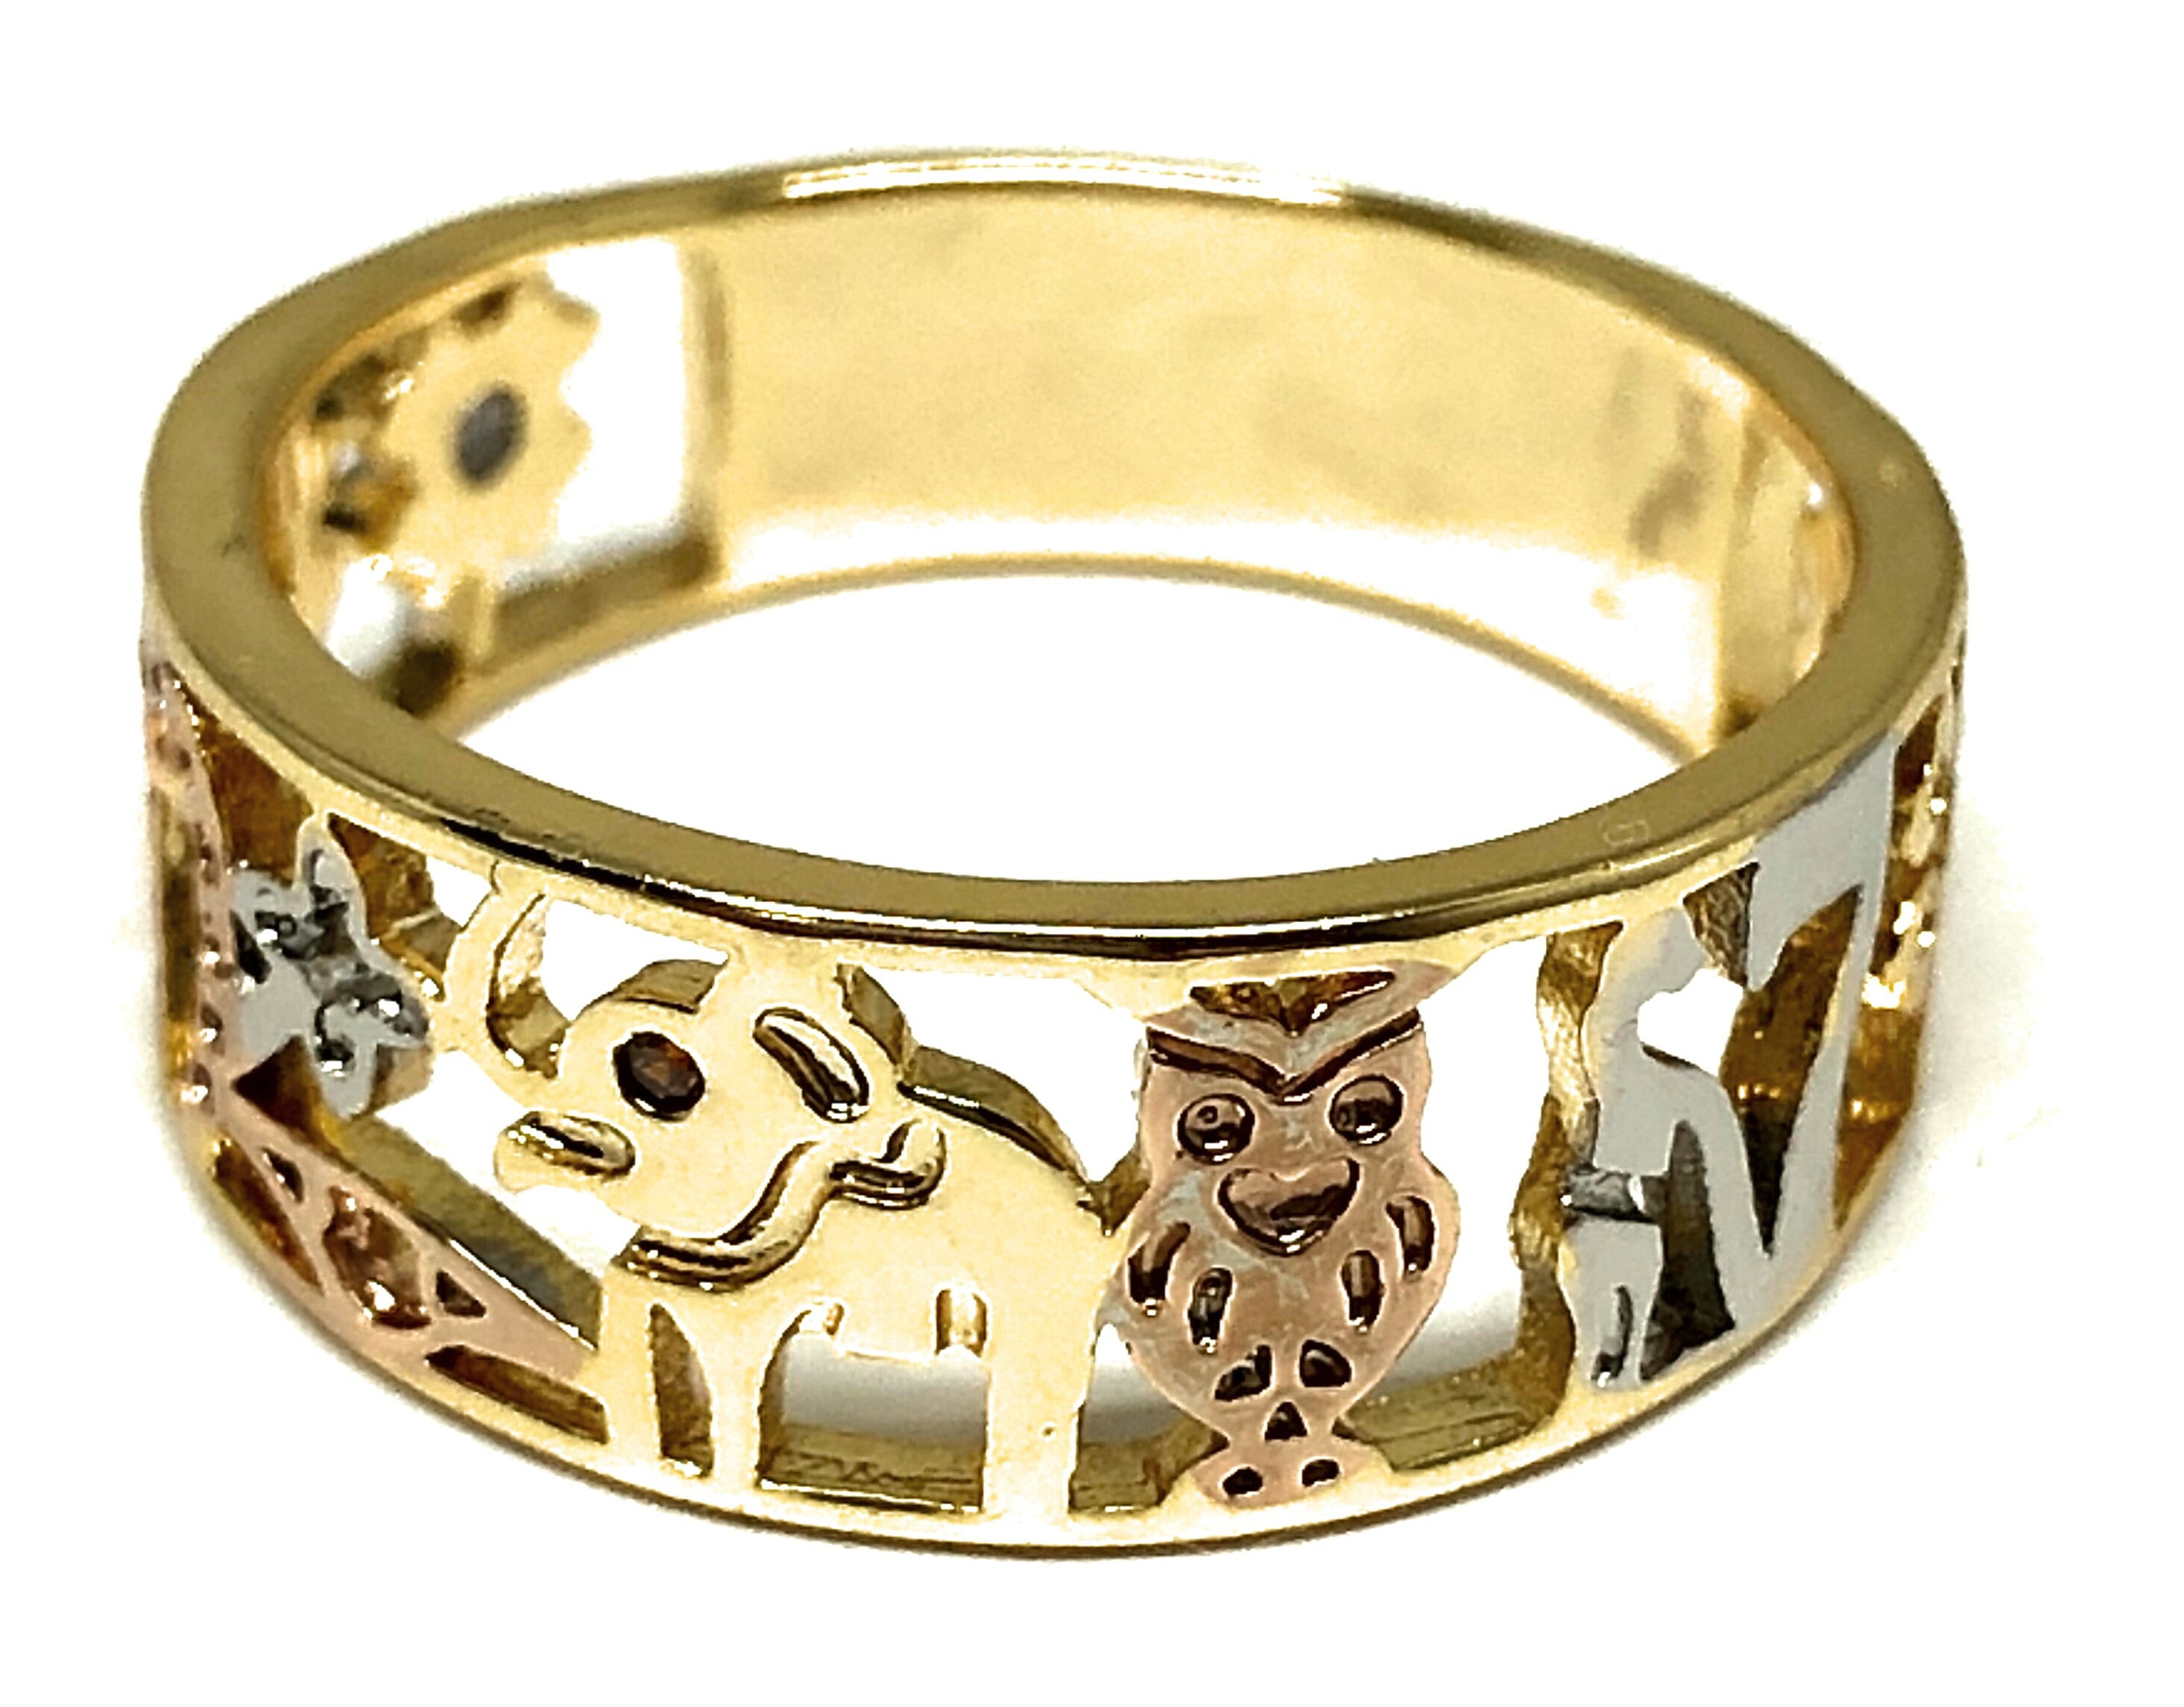 Gold Plated Women's Lucky Charm Symbols Ring Anillo de Suerte